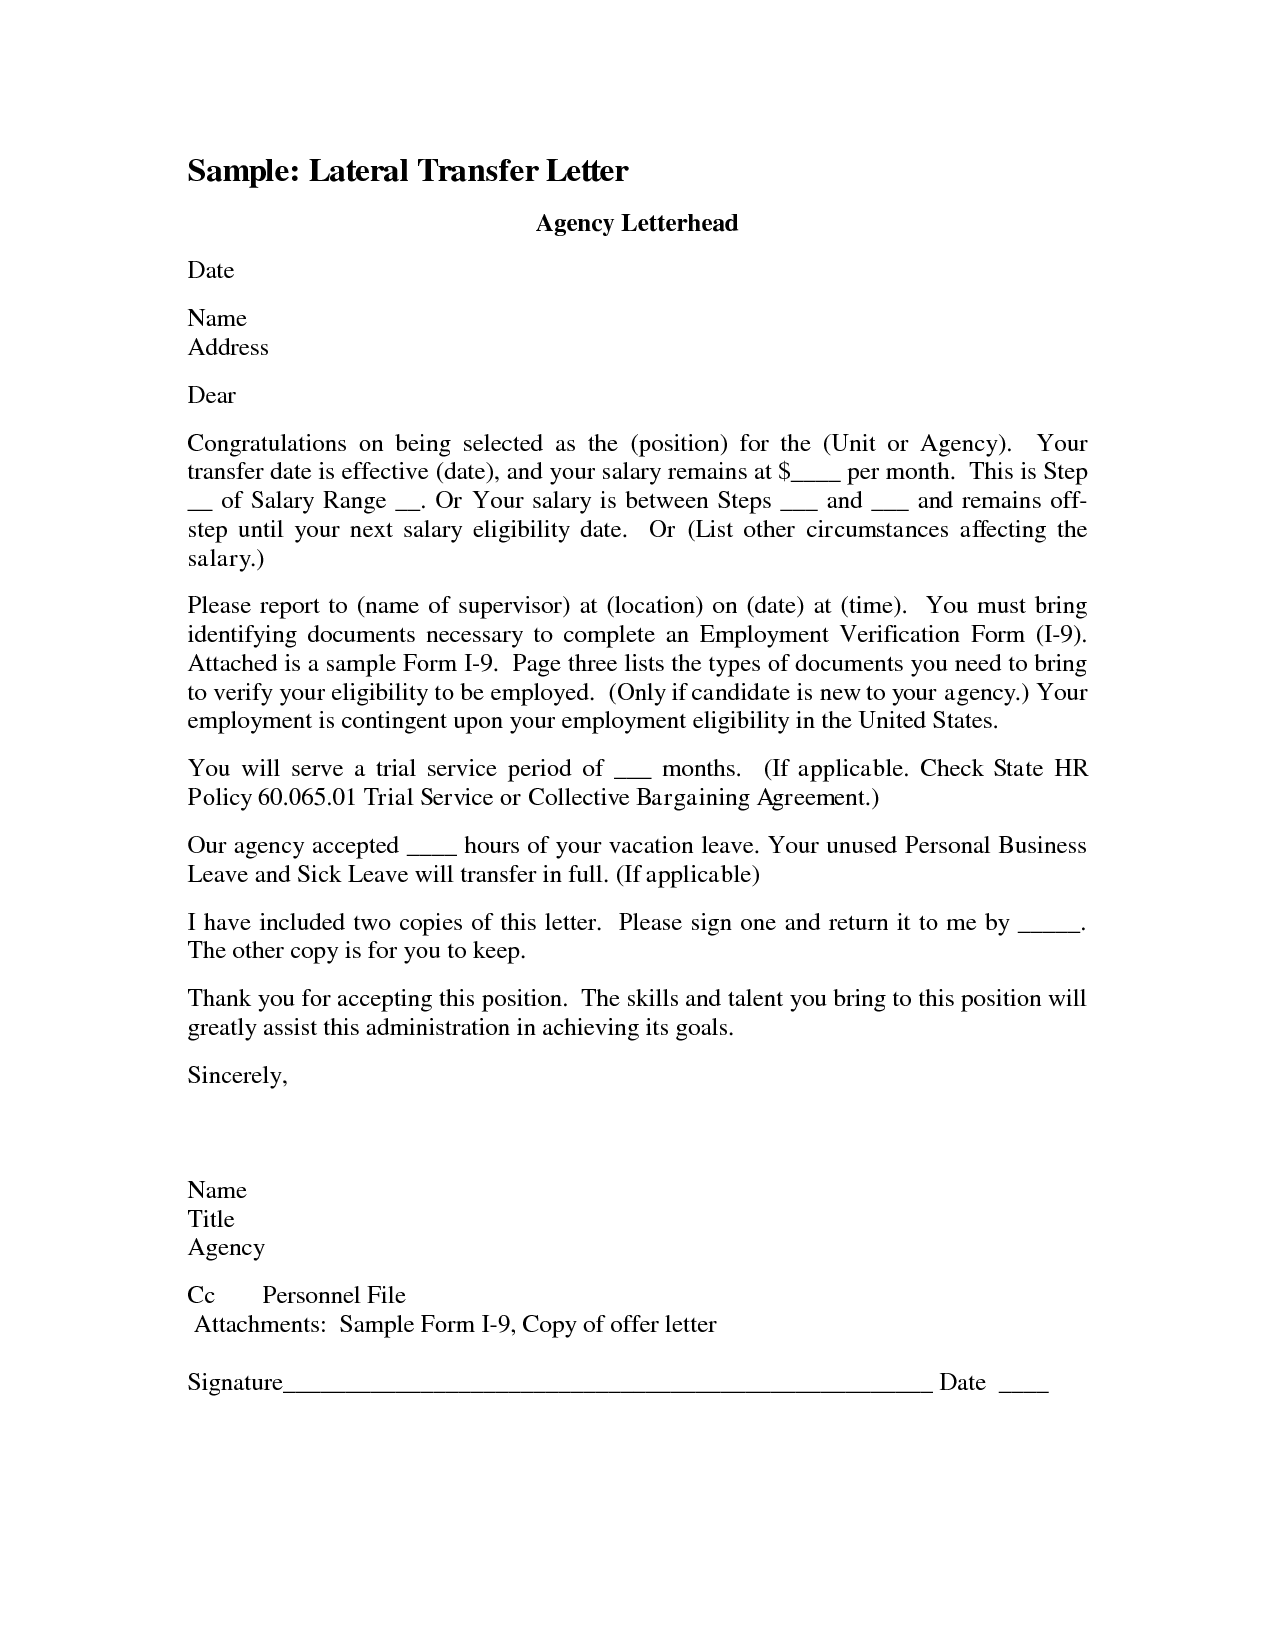 sample request letter for job reassignment  Letter Template Category Page 1 - efoza